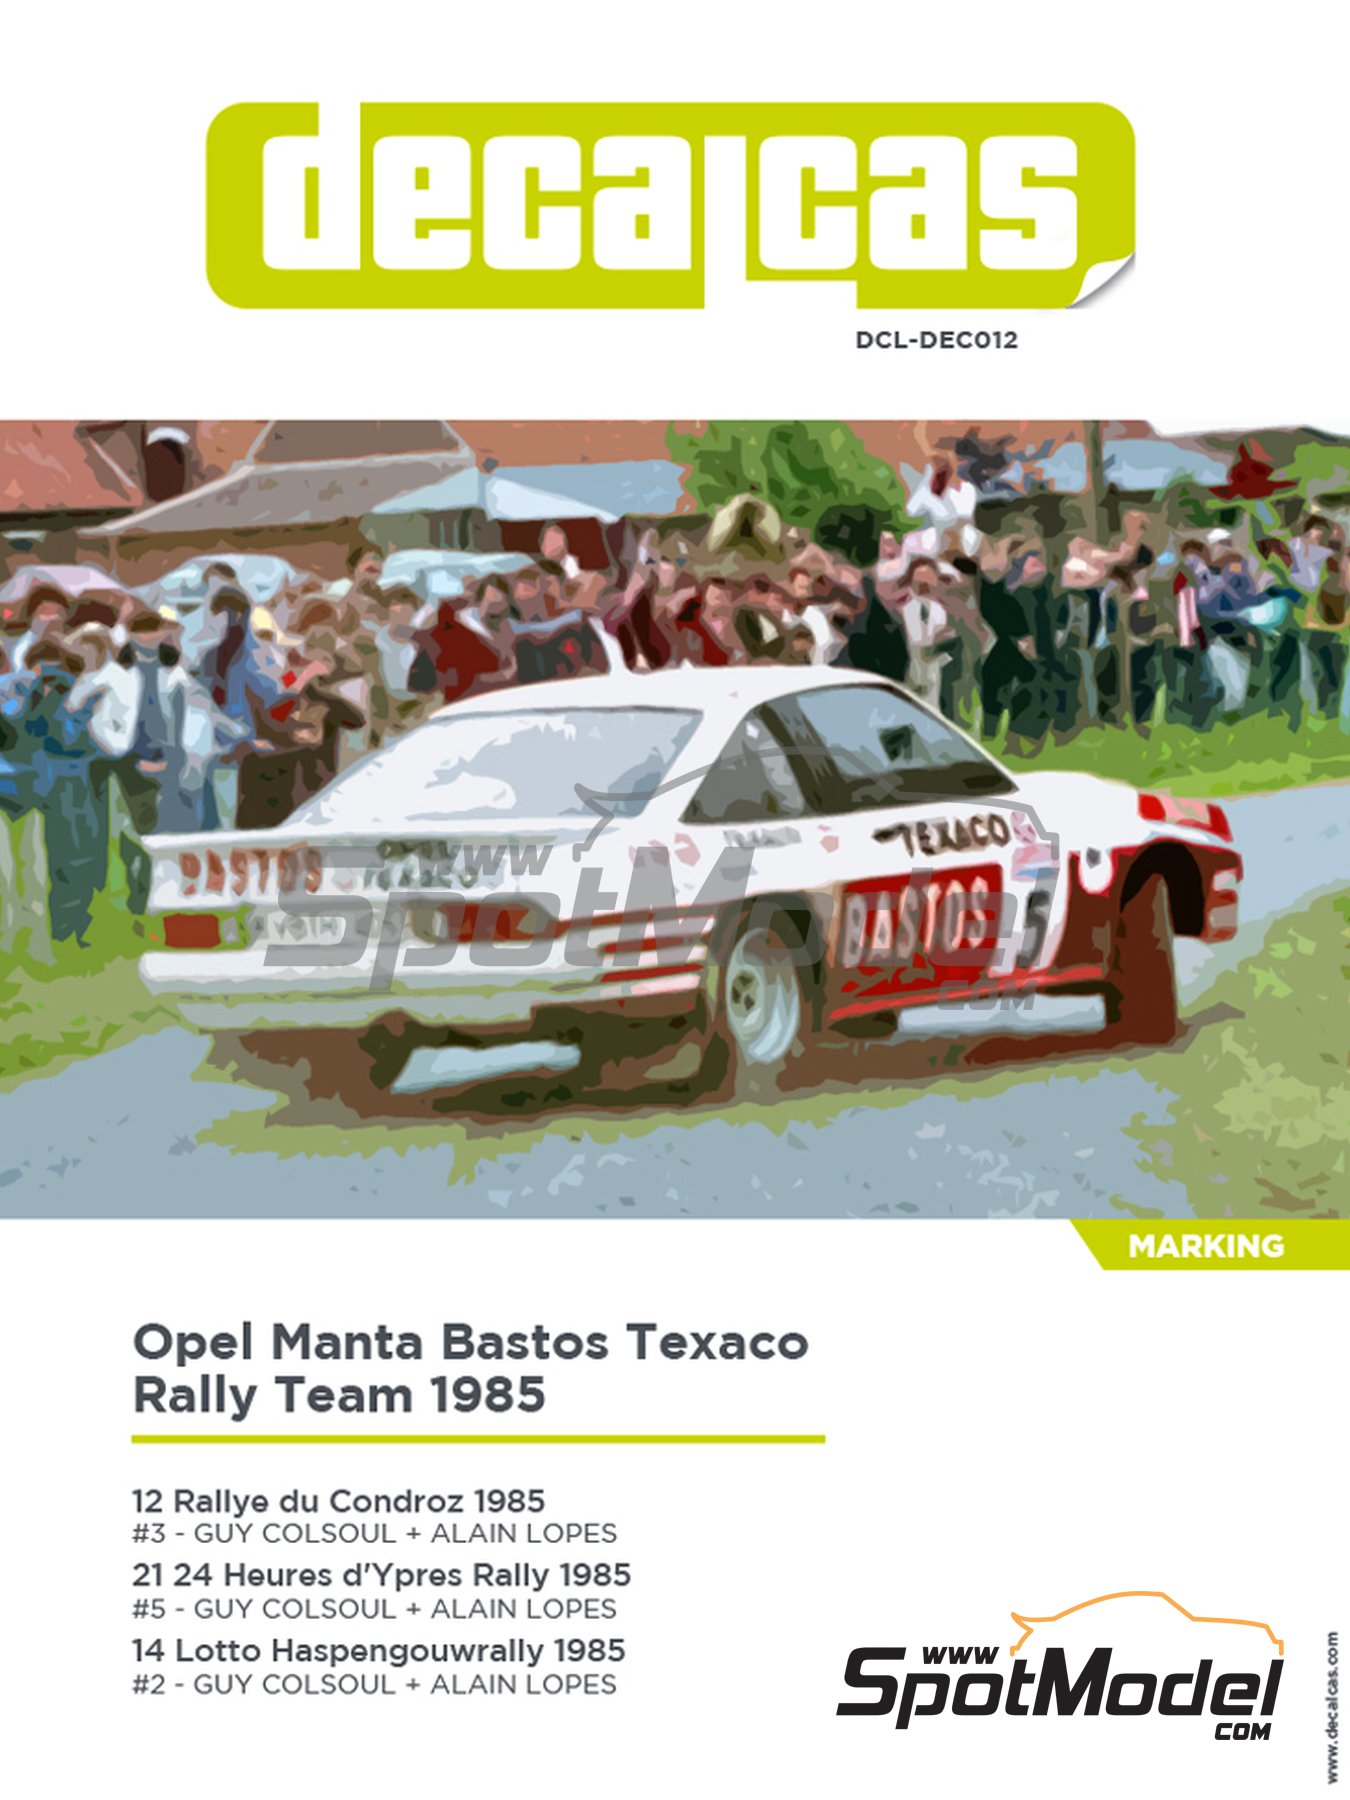 Opel Manta 400 Group B Bastos Texaco Rally Team - 24 Hours de Ypres Rally, Condroz Rally, Haspengow Rally 1985 | Marking / livery in 1/24 scale manufactured by Decalcas (ref. DCL-DEC012) image